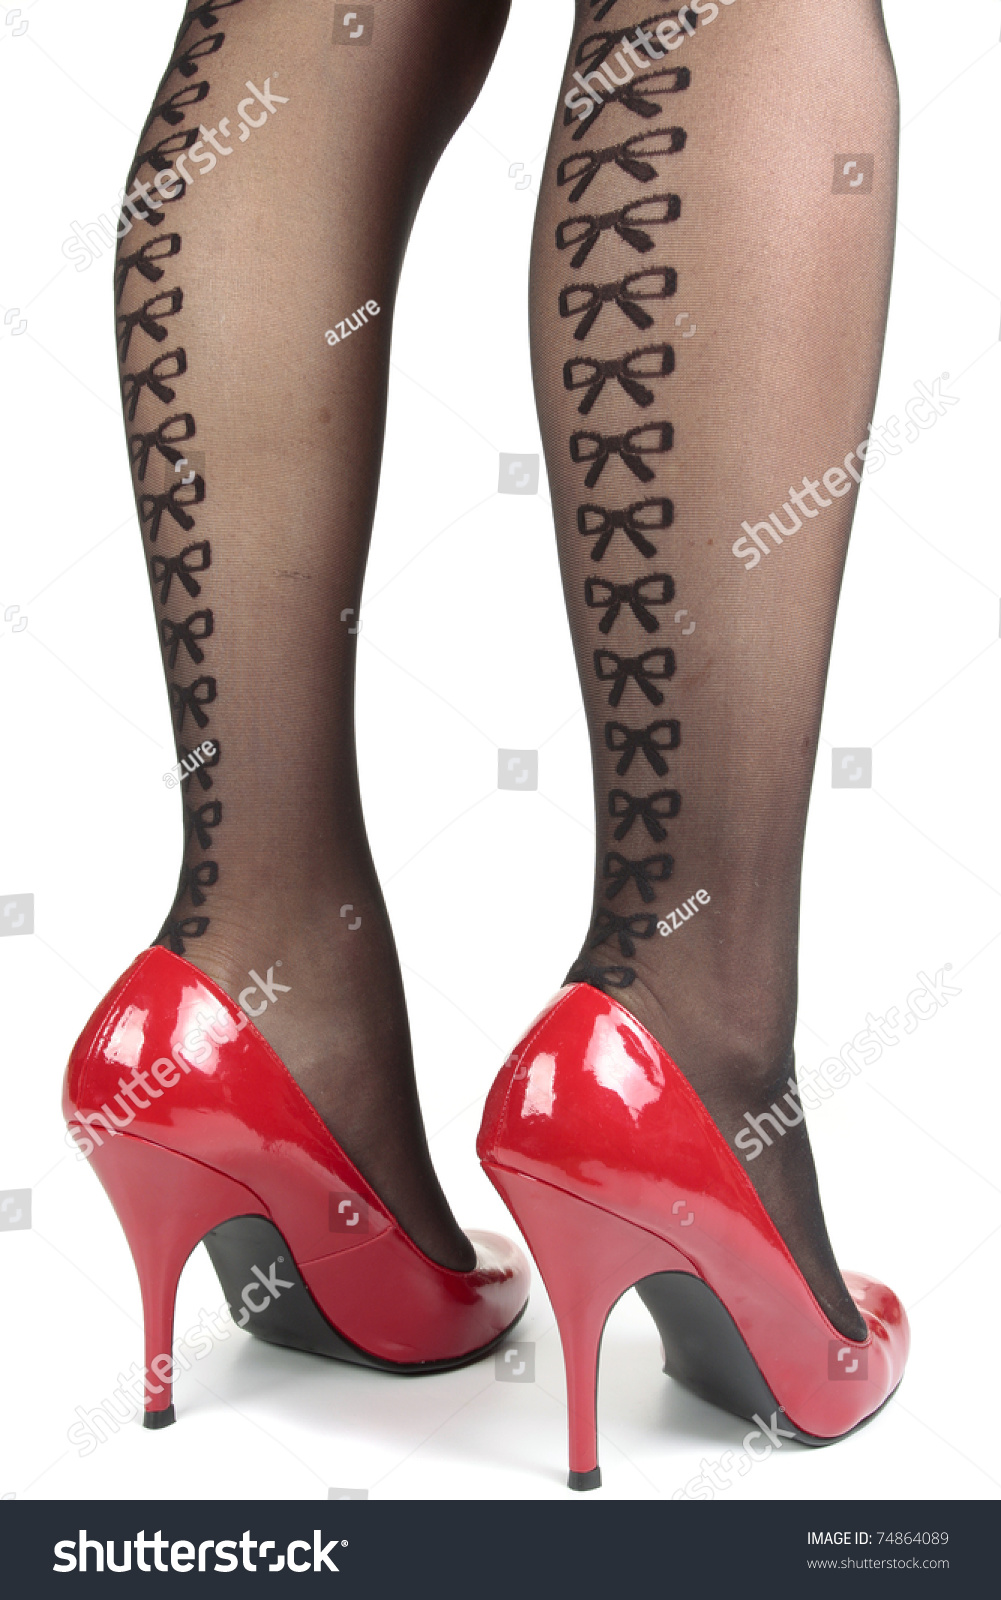 Unique Beautiful Ladies Footwear Boots And Pumps Stock Photo - Image 31419502